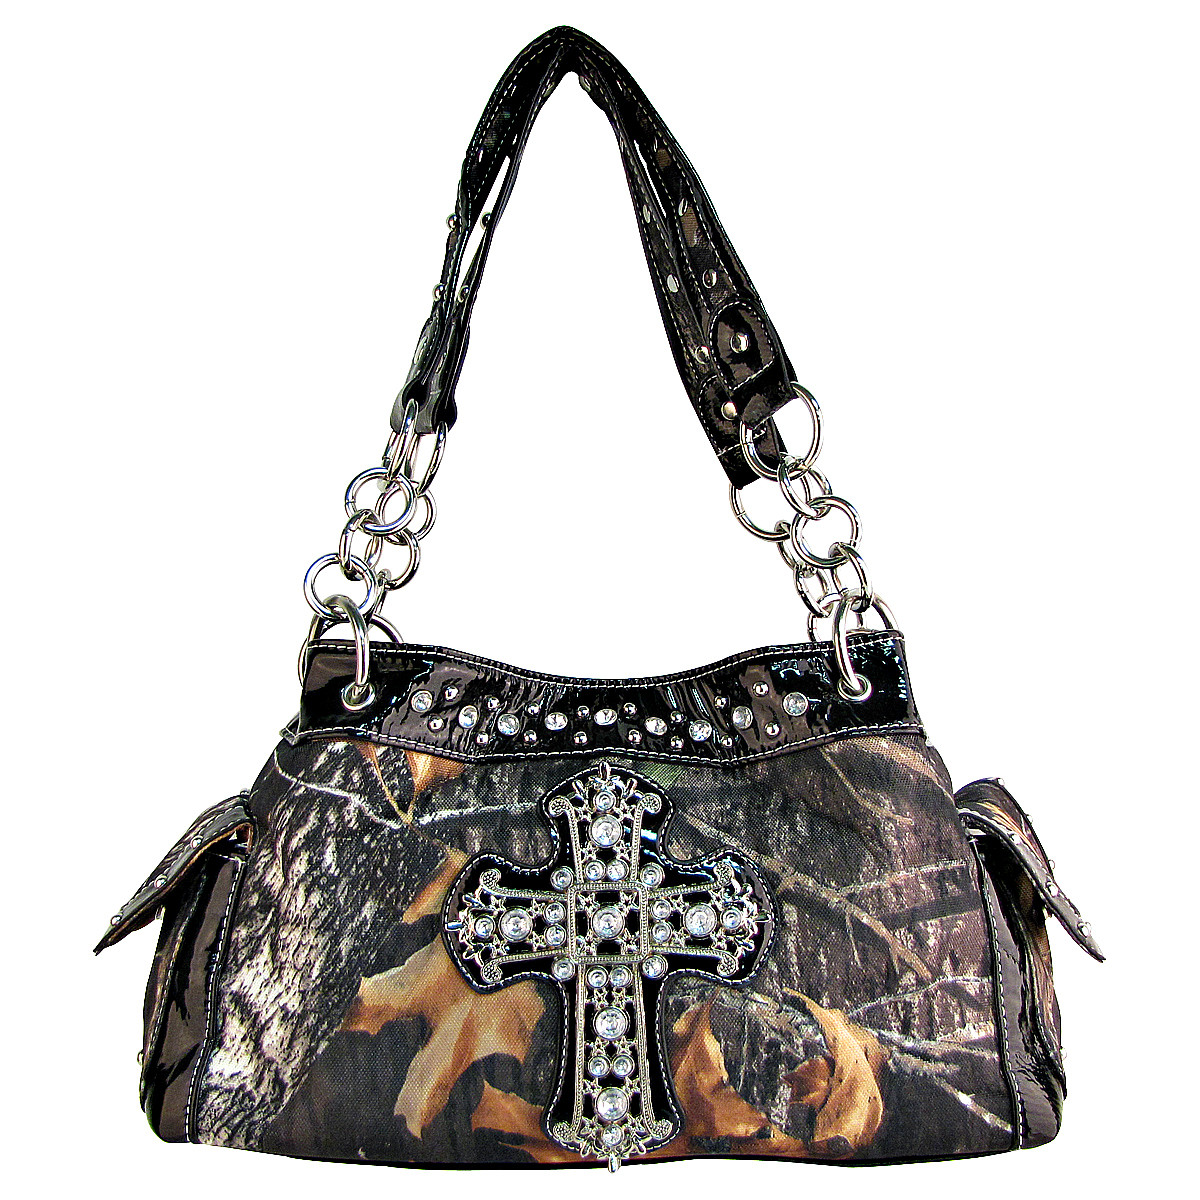 BLACK RHINESTONE MOSSY CAMO LOOK CROSS SHOULDER HANDBAG BLACK RHINESTONE MOSSY CAMO LOOK CROSS SHOULDER HANDBAG HB1-C-321-2BLK